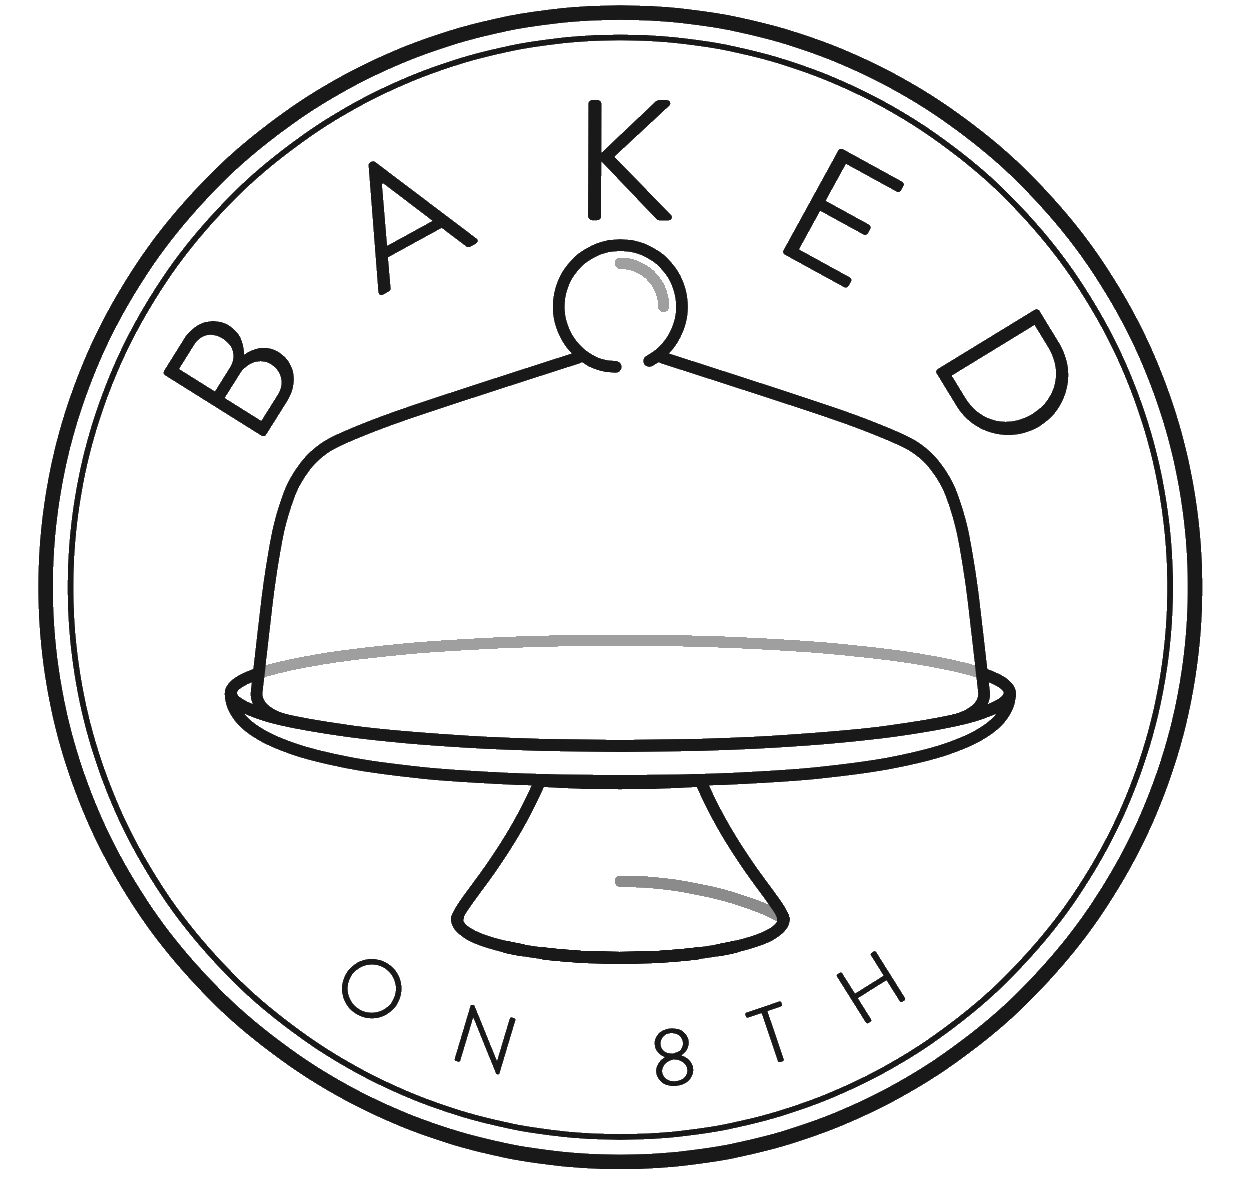 Baked on 8th - Have a special occasion or searching for a sweet treat? Baked on 8th was founded in 2018 by Leah Carmean and specializes in classic and trendy single-serve desserts as well as custom cakes and cookies.